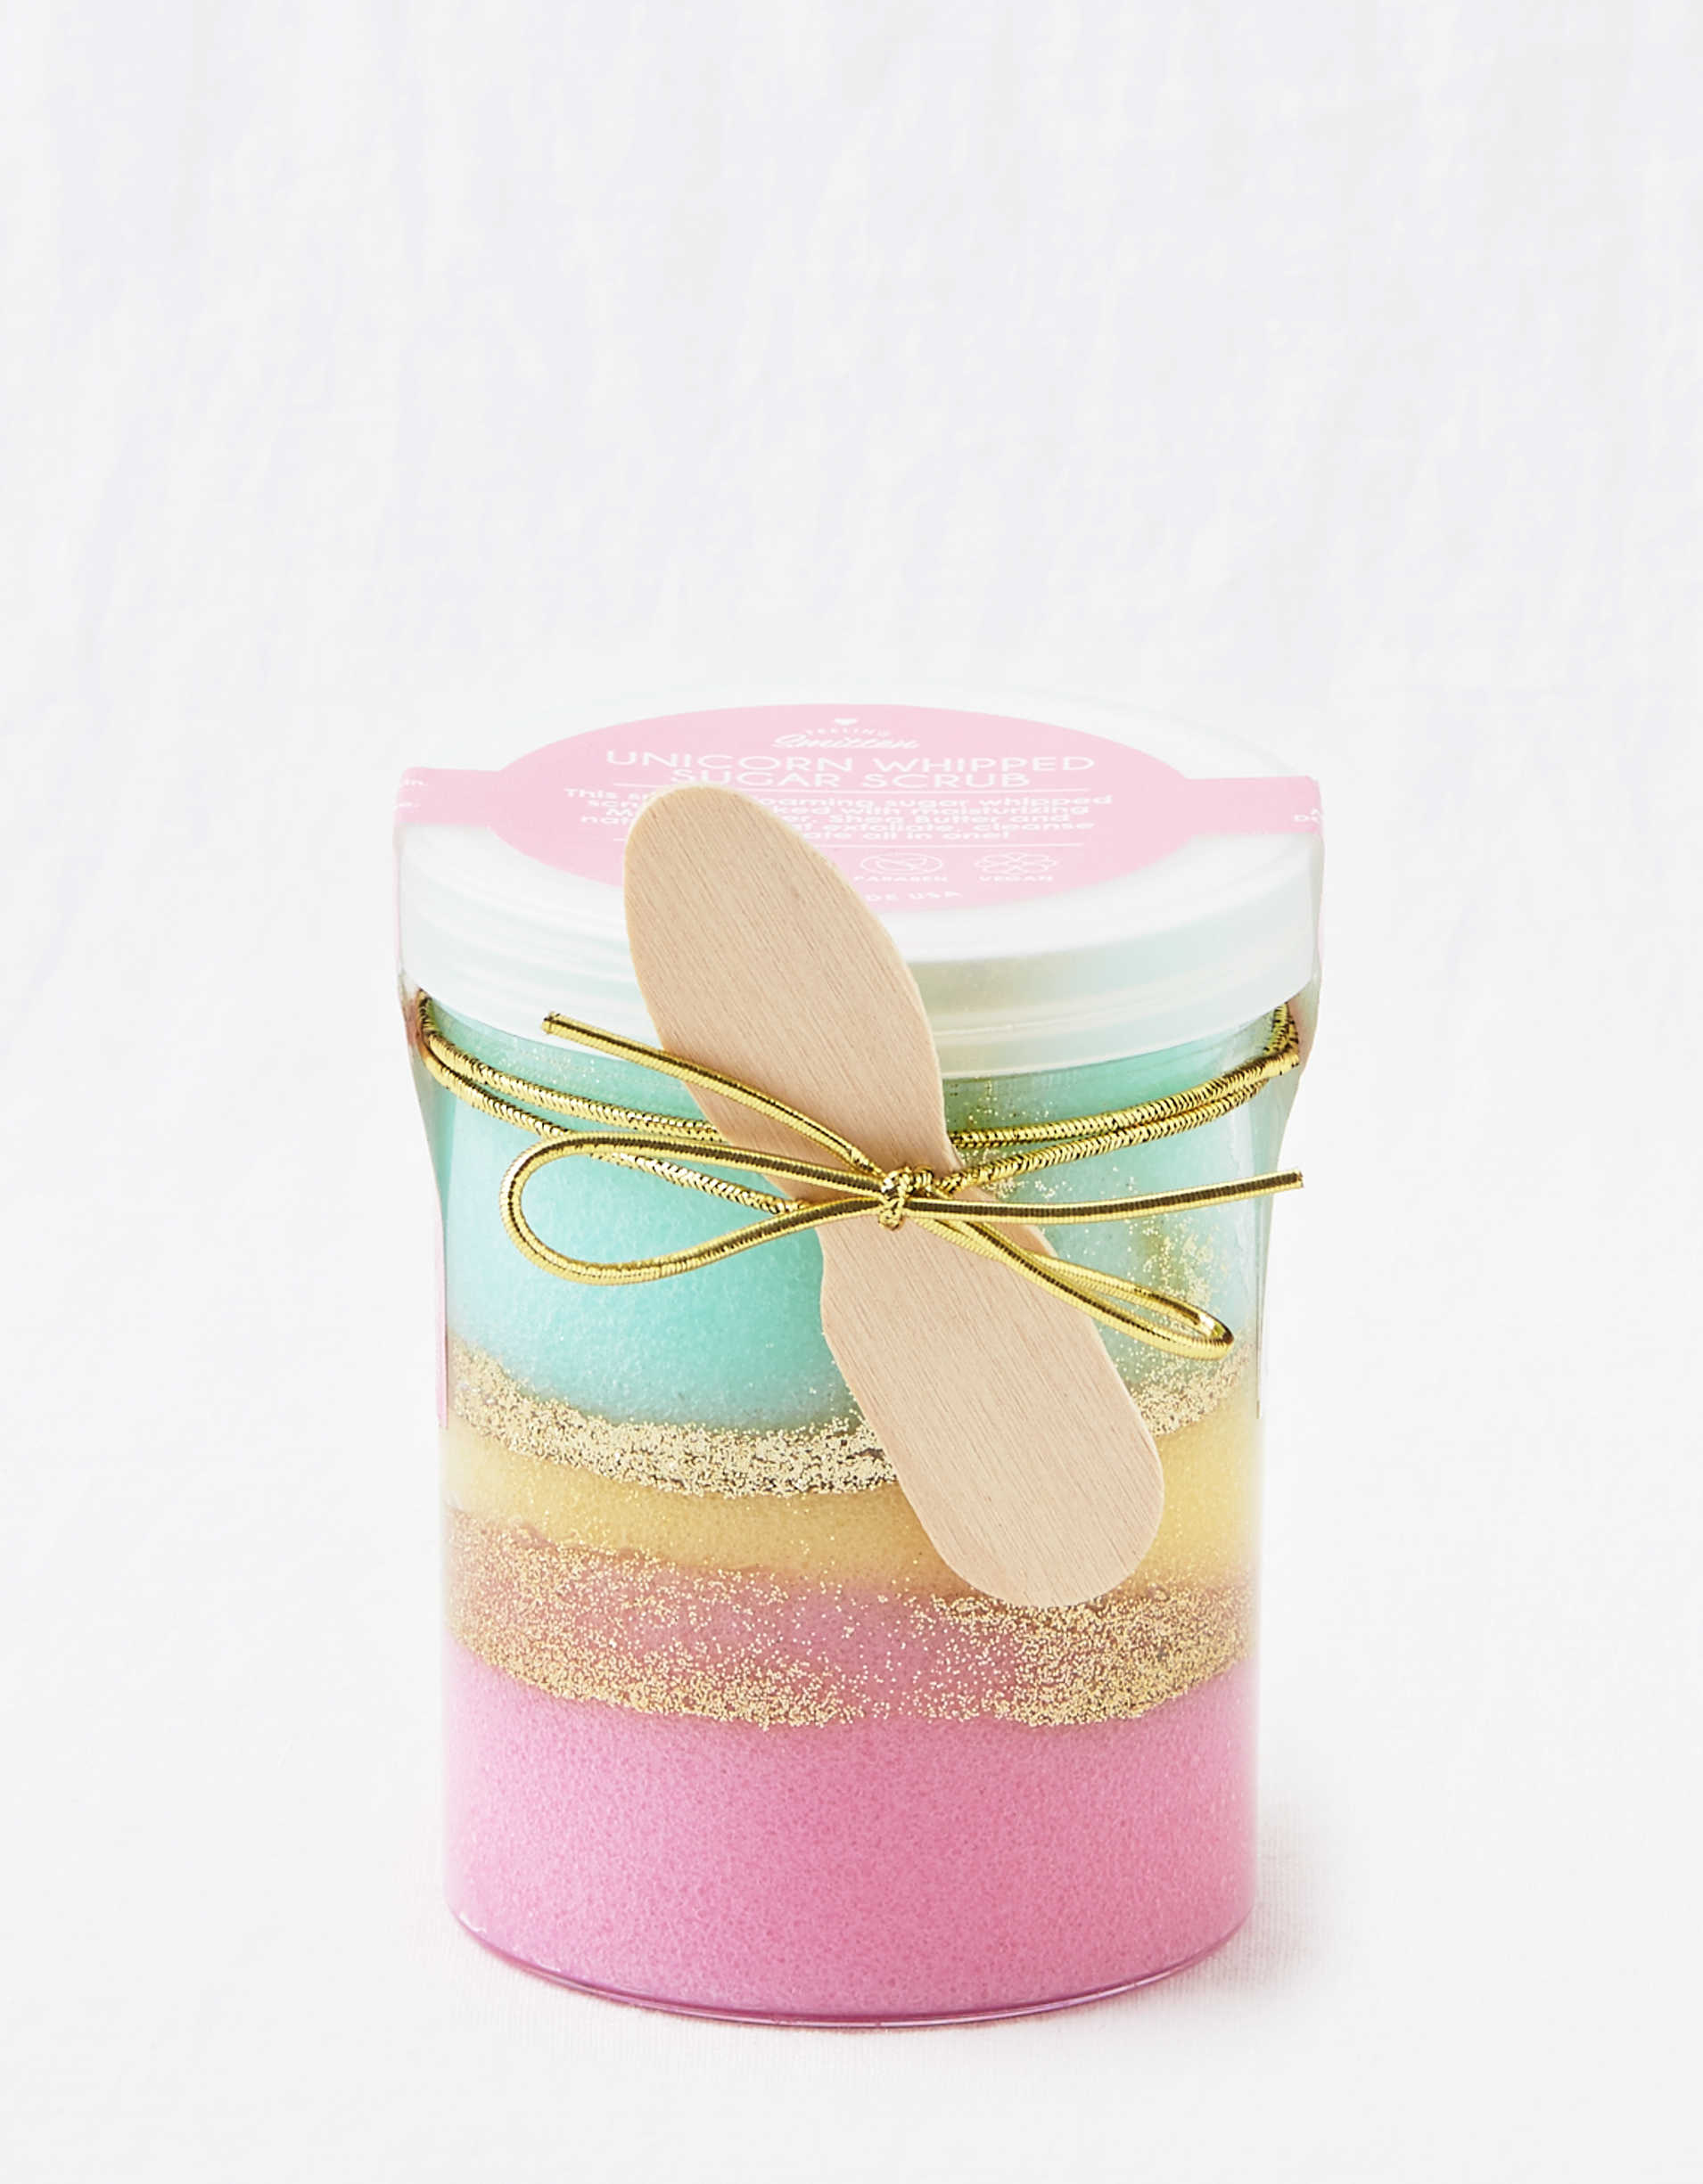 Feeling Smitten Sugar Scrub Jar